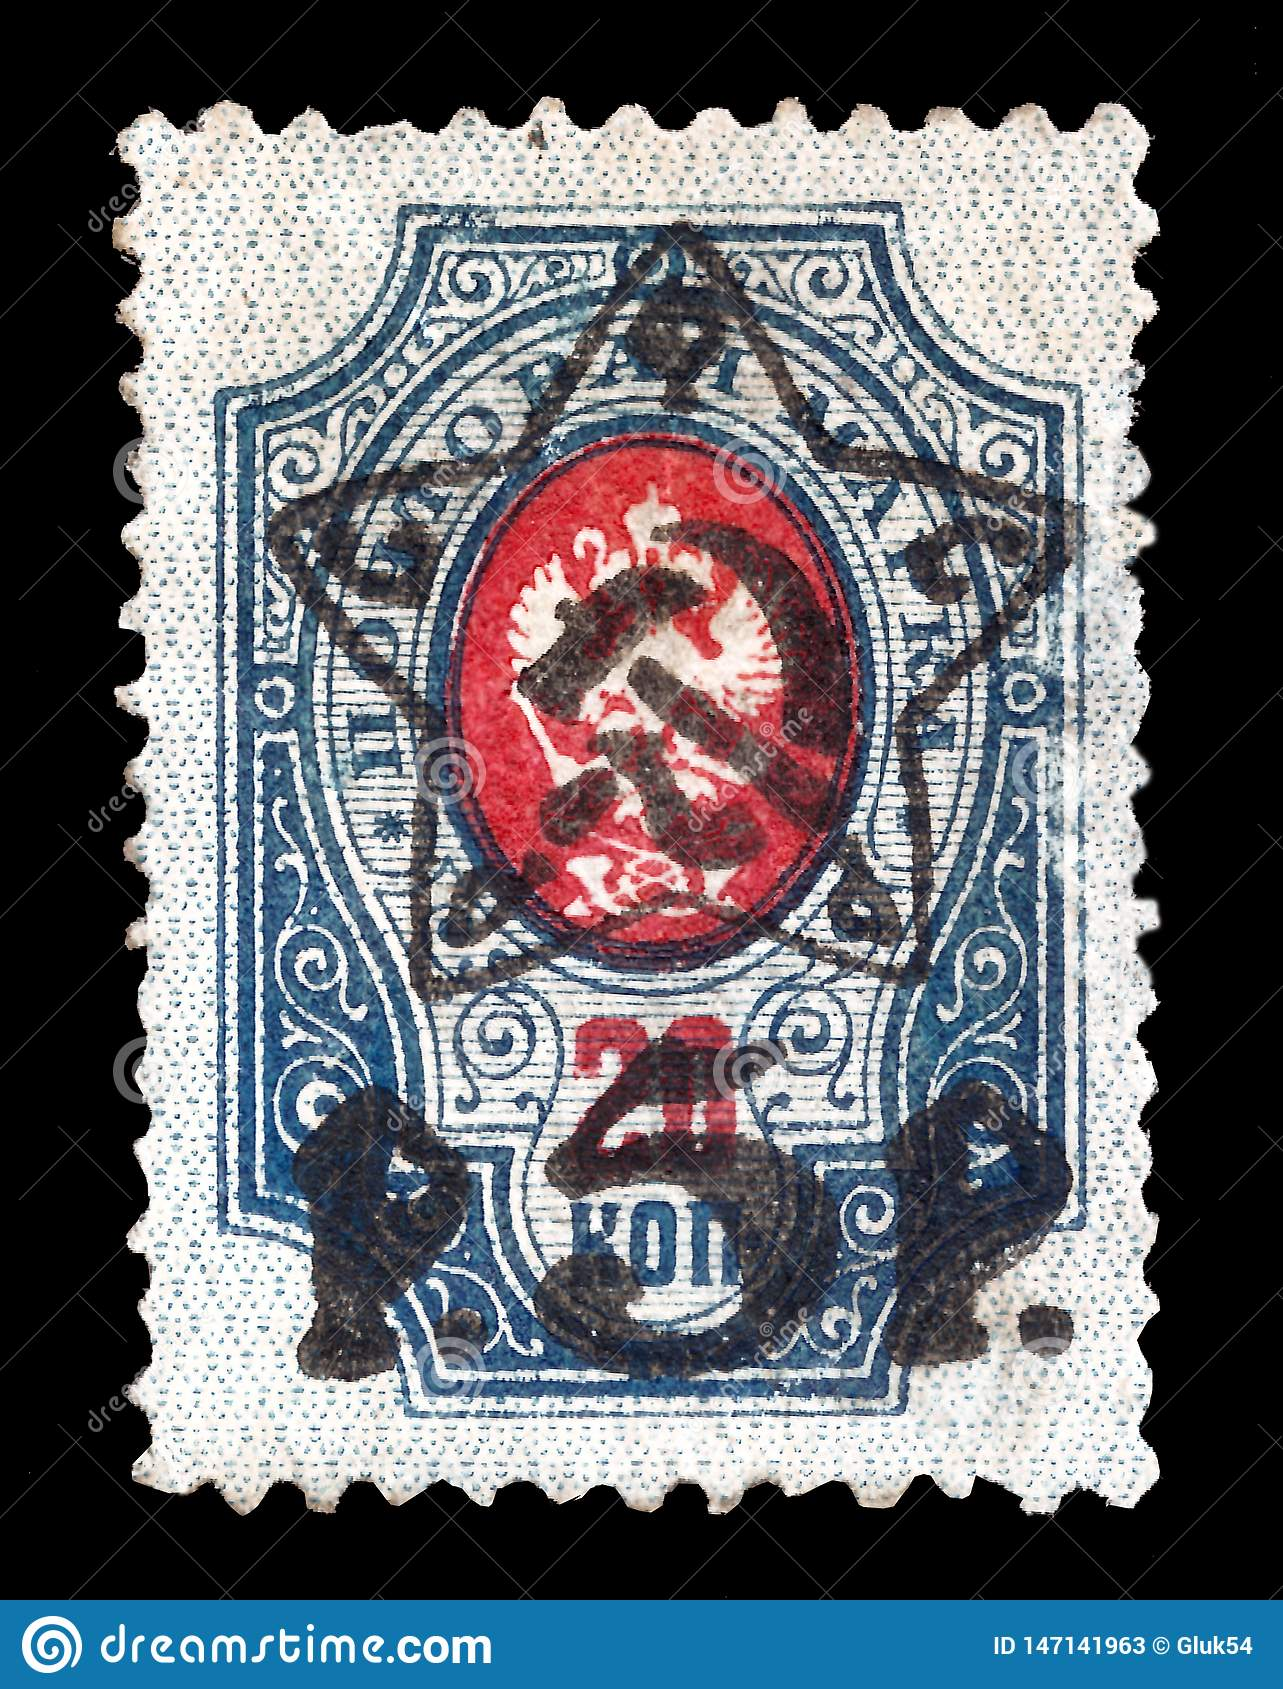 Russian Postage Stamp issued in Tsarist Russia before the Revolution of 1917 and used in Bolshevik Russia by means of overprints